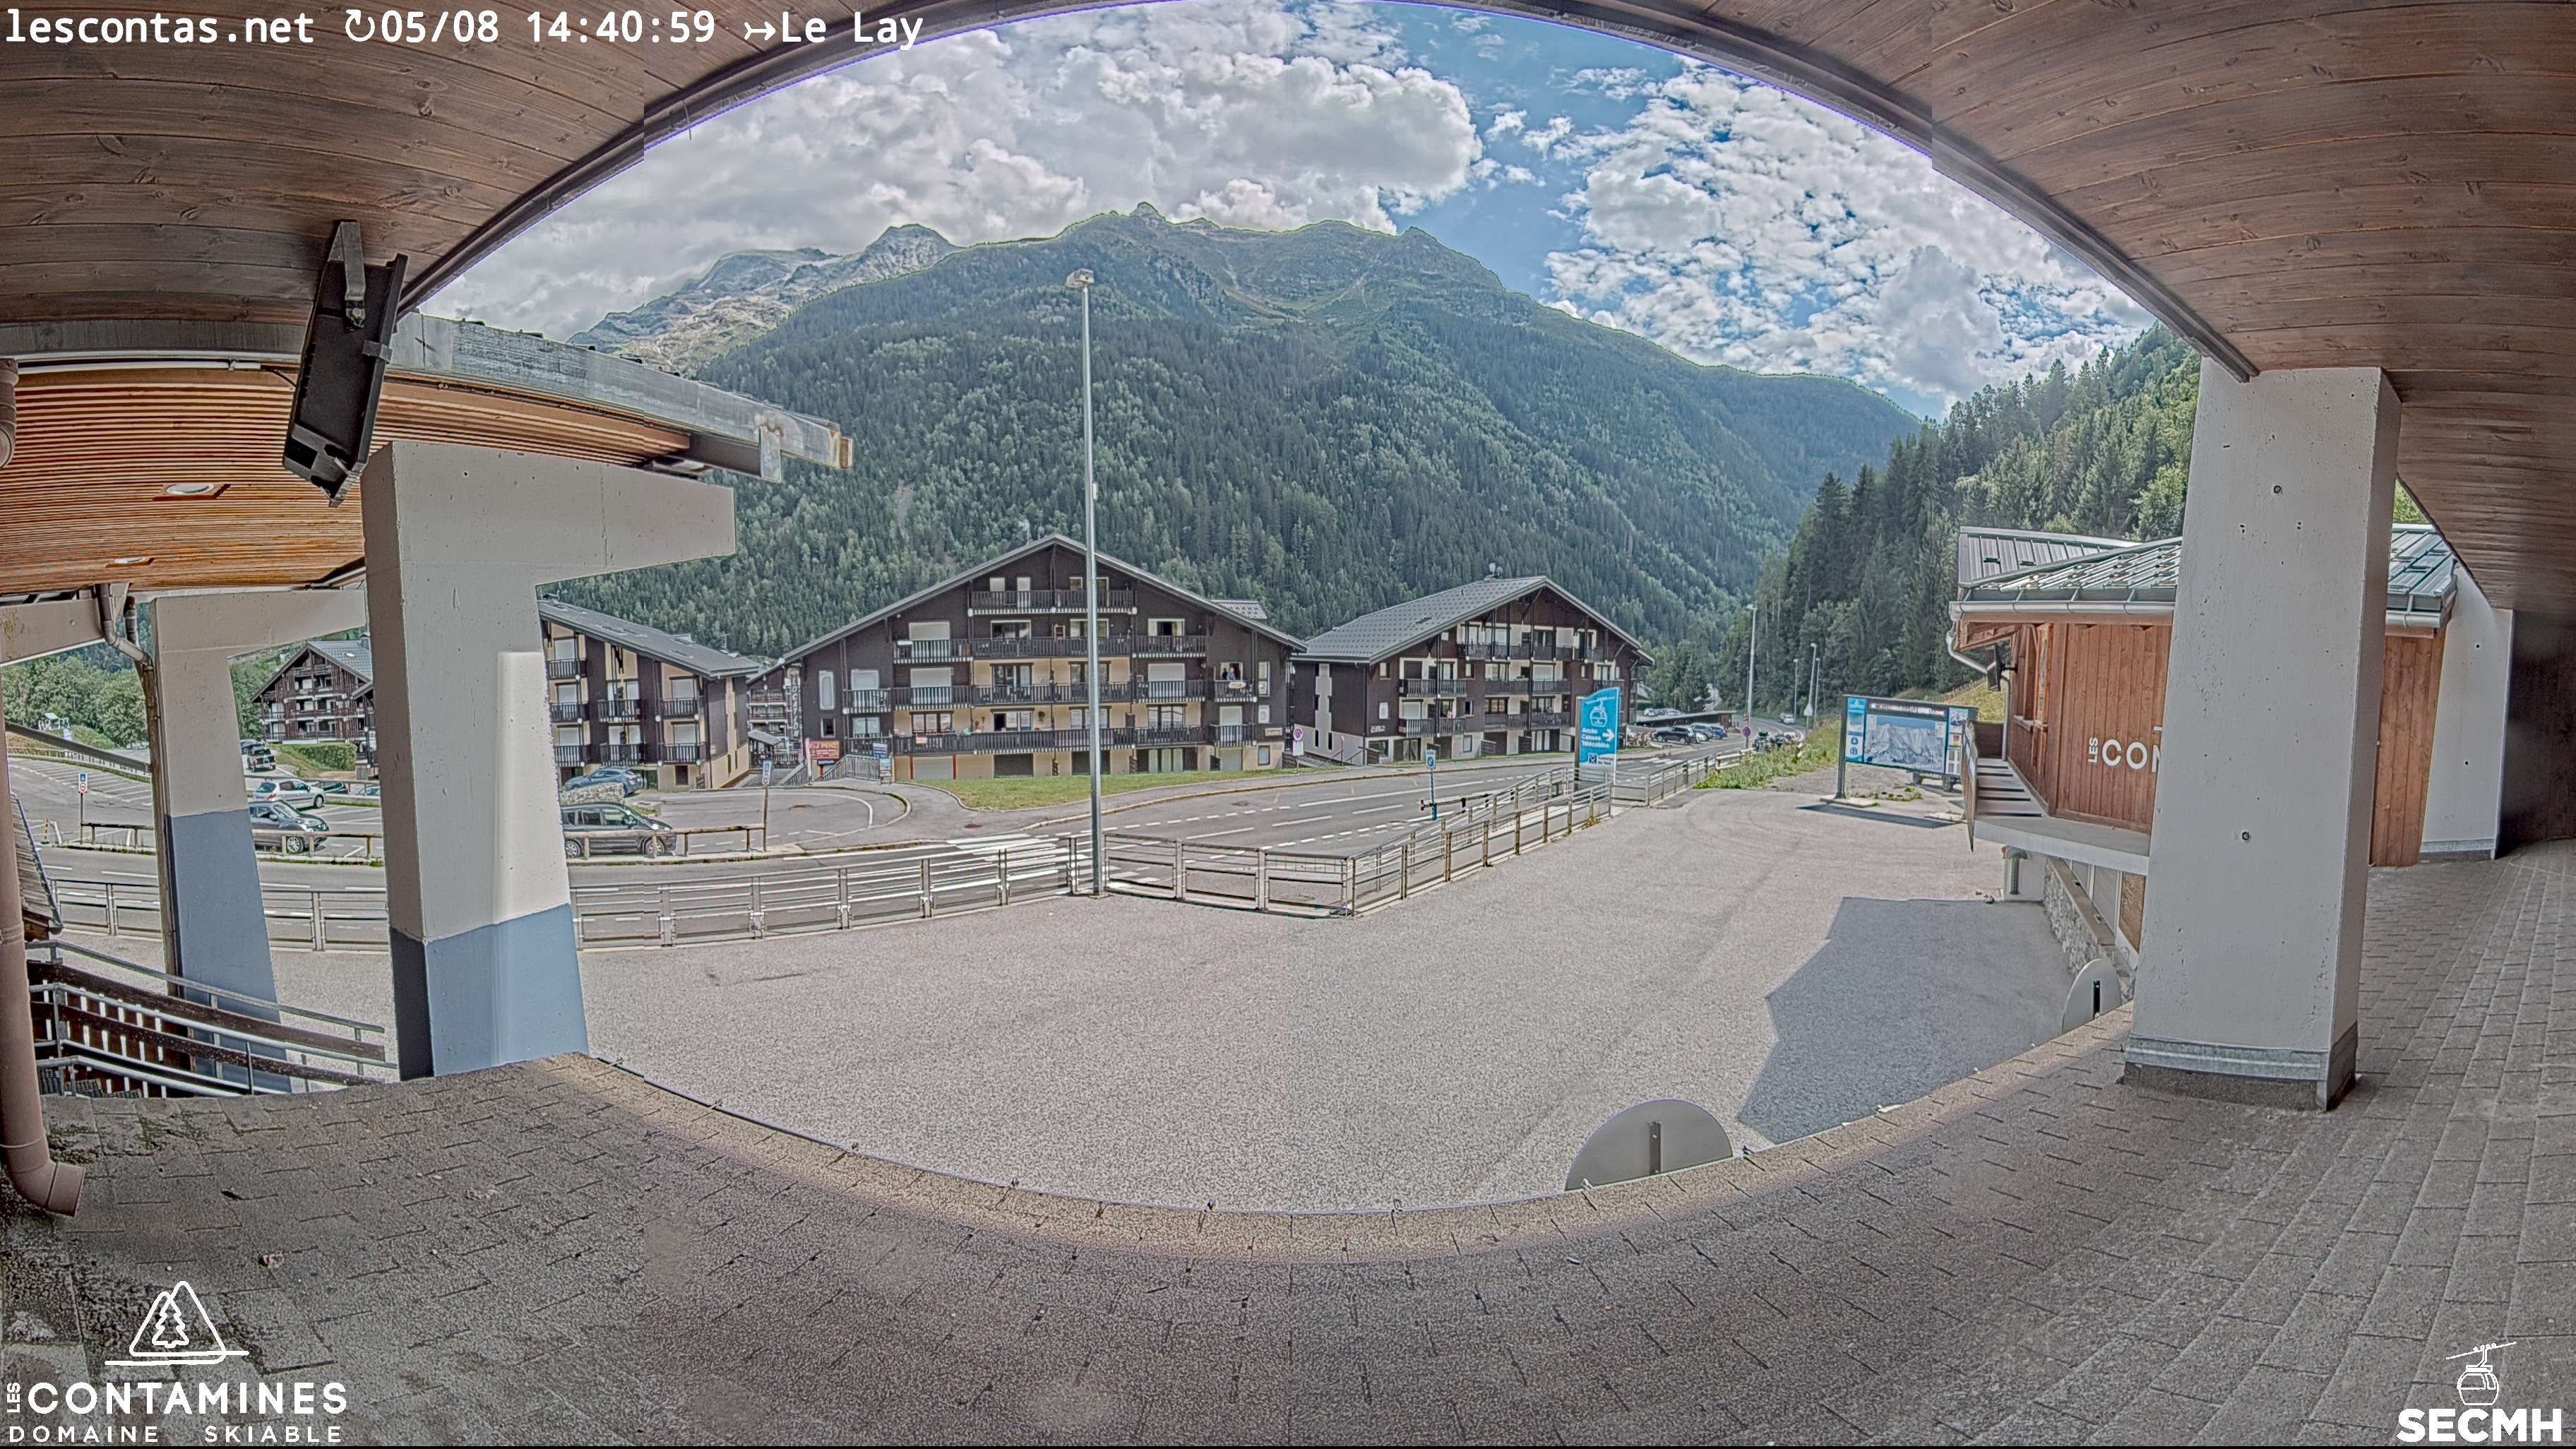 Webcam Les Contamines Montjoie